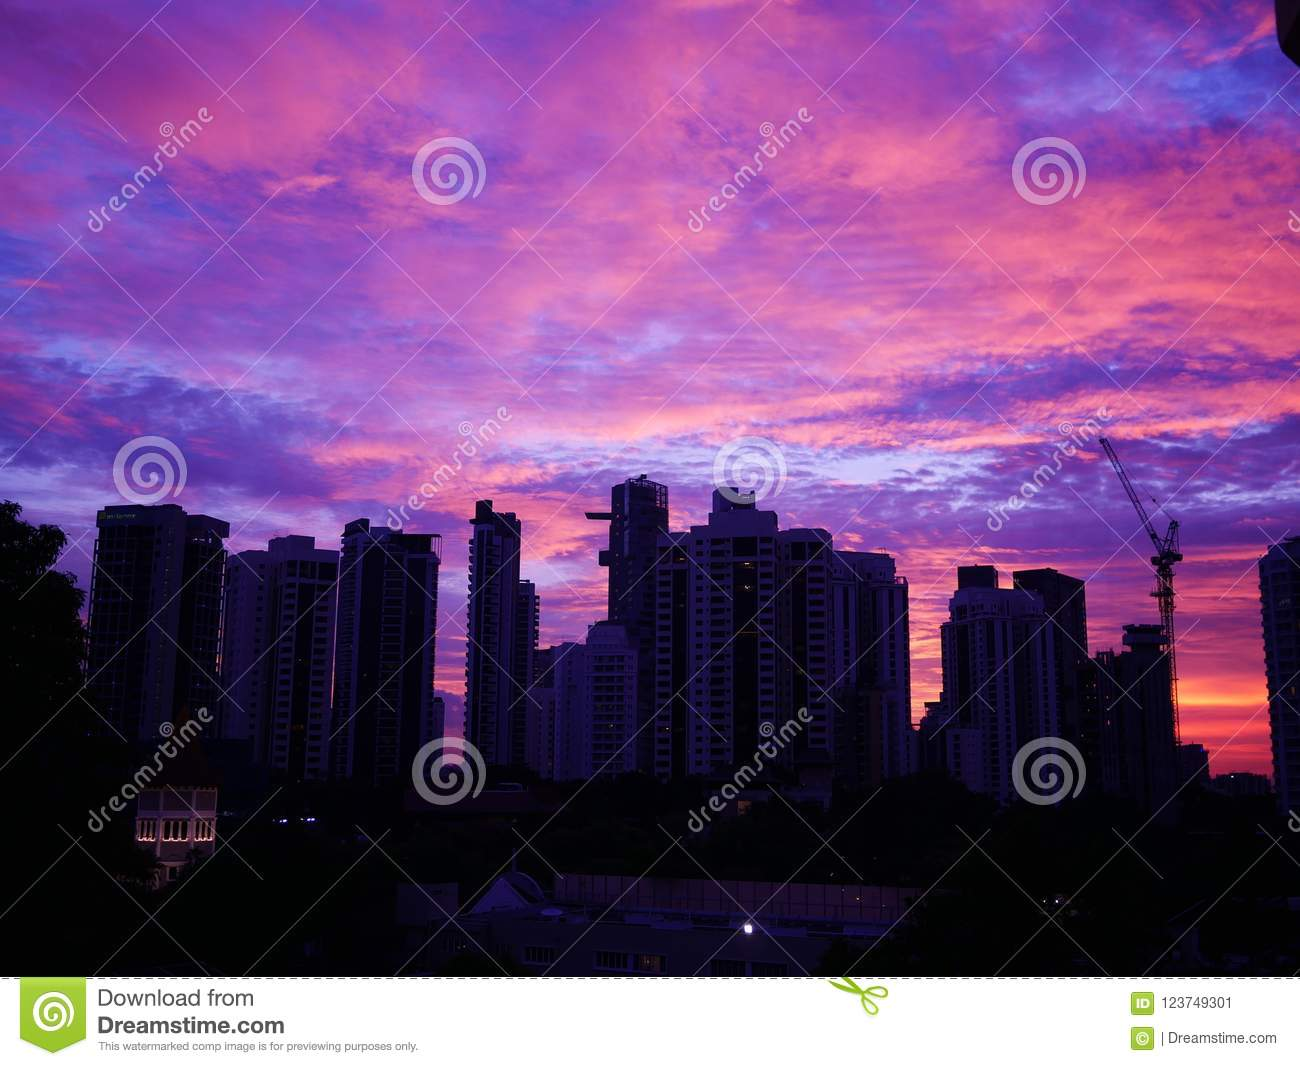 Sunset behind buildings with beautiful cloudy sky